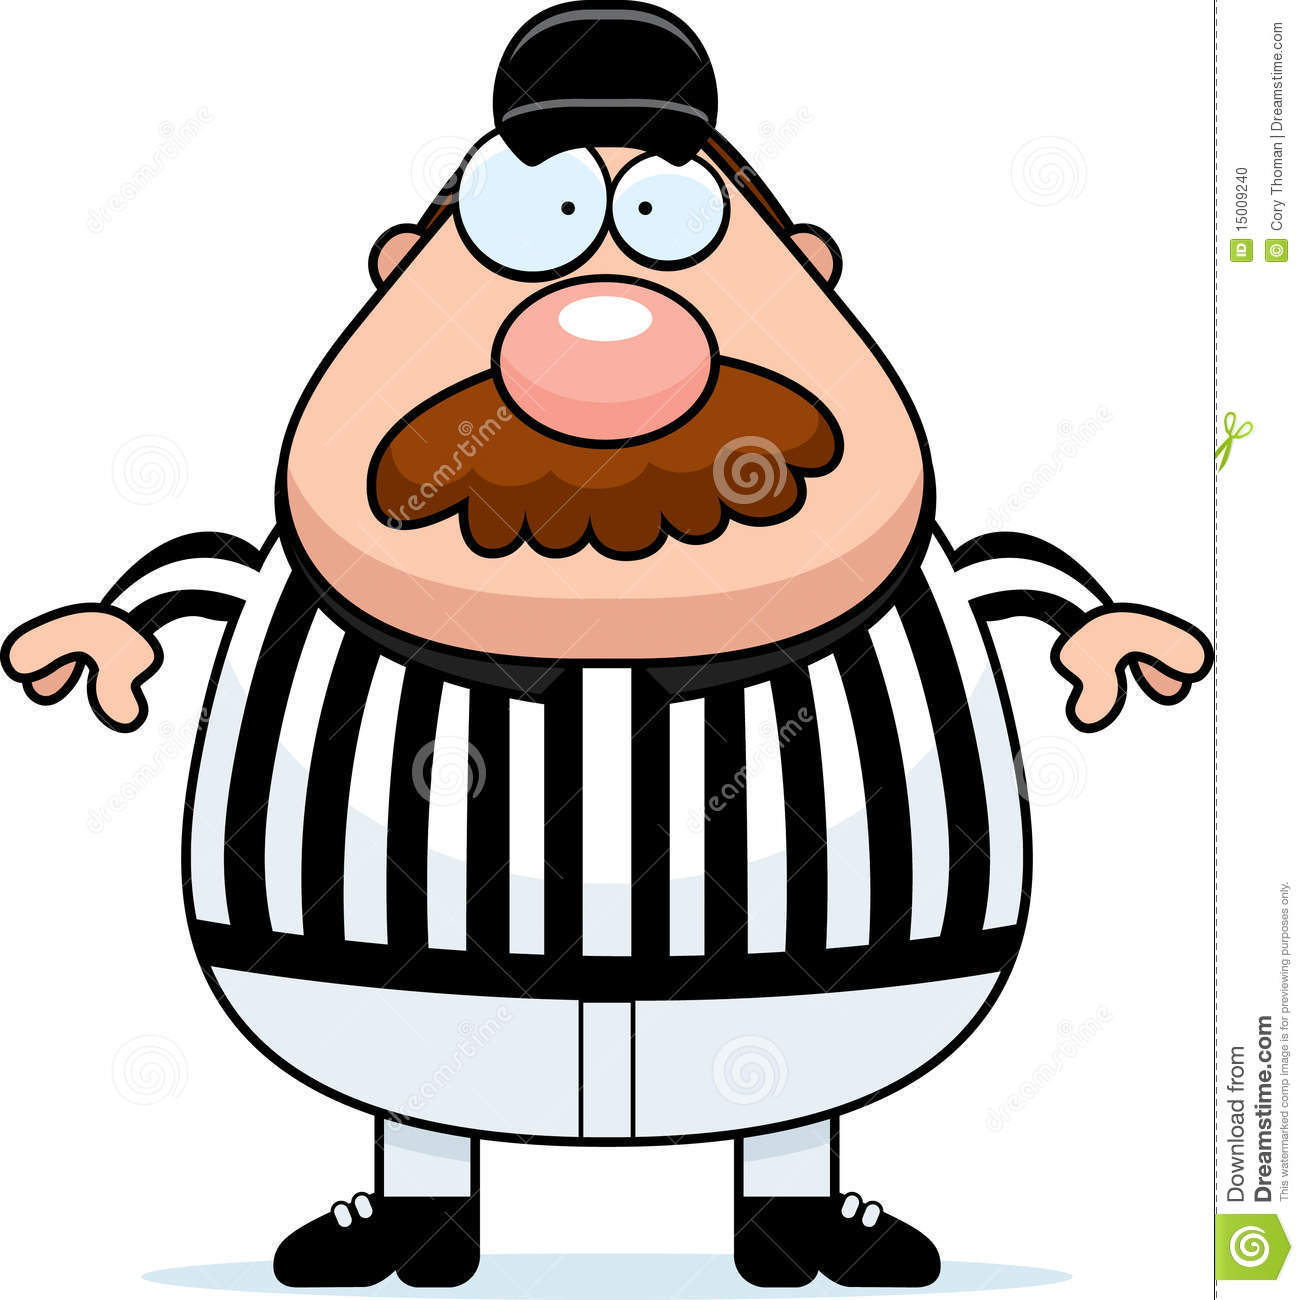 cartoon referee in a black and white uniform.